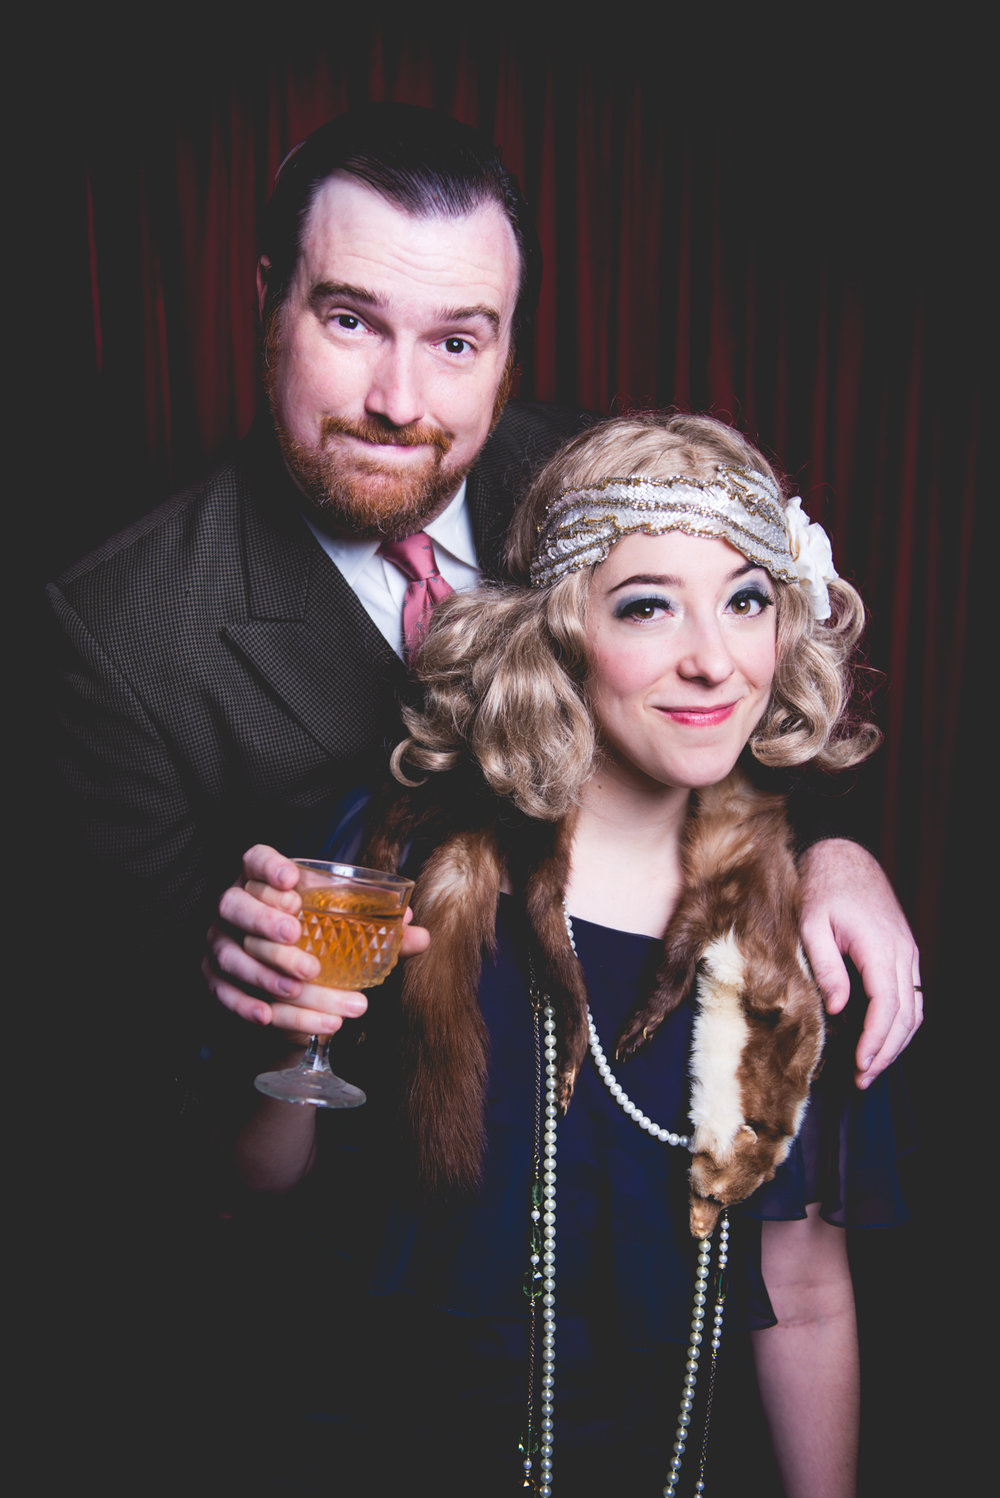 Kaci Beeler and Curtis Luciani as F. Scott and Zelda Fitzgerald